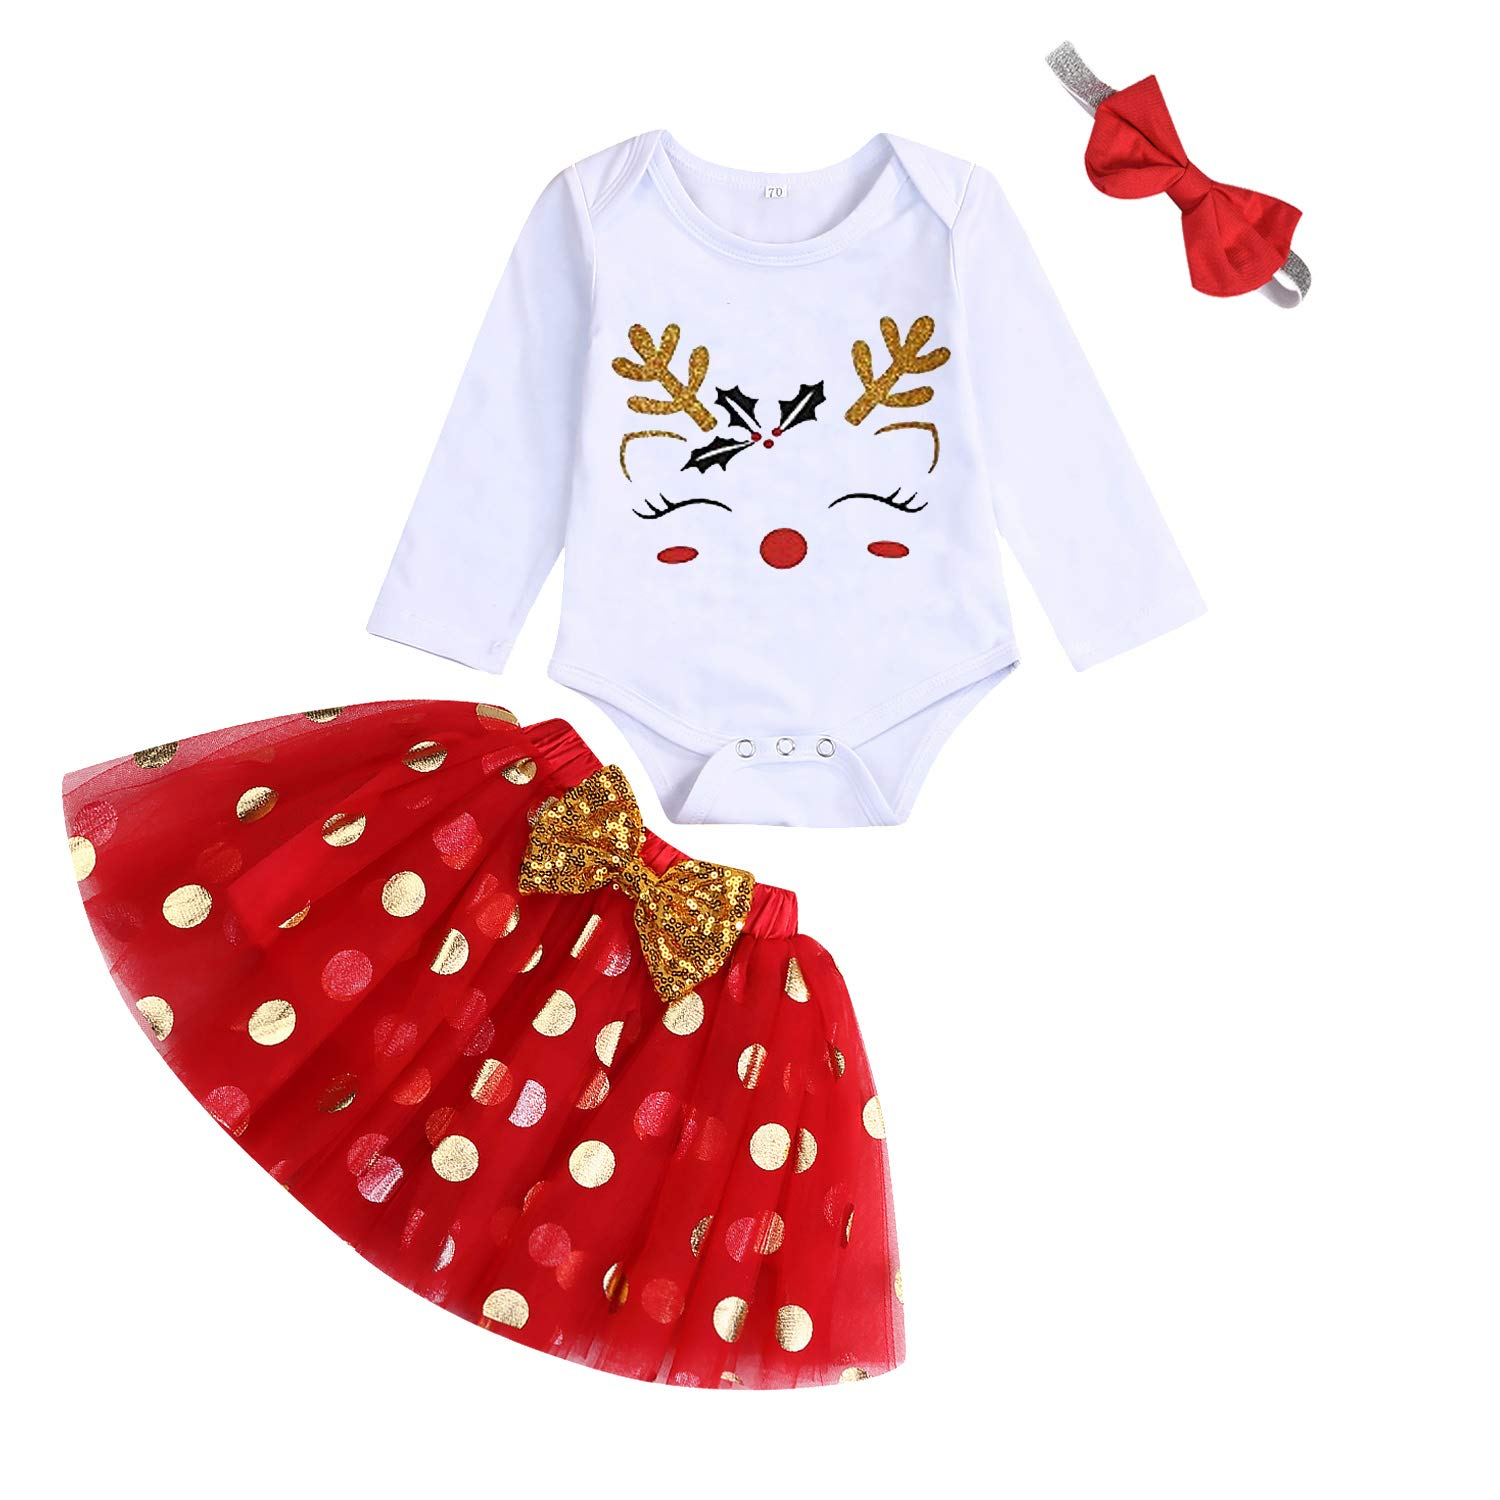 My First Christmas Clothes Baby Girls My 1st Christmas Romper Top+Dot Tutu Skirt+Leg Warmers+Headband 4Pcs Outfit Set